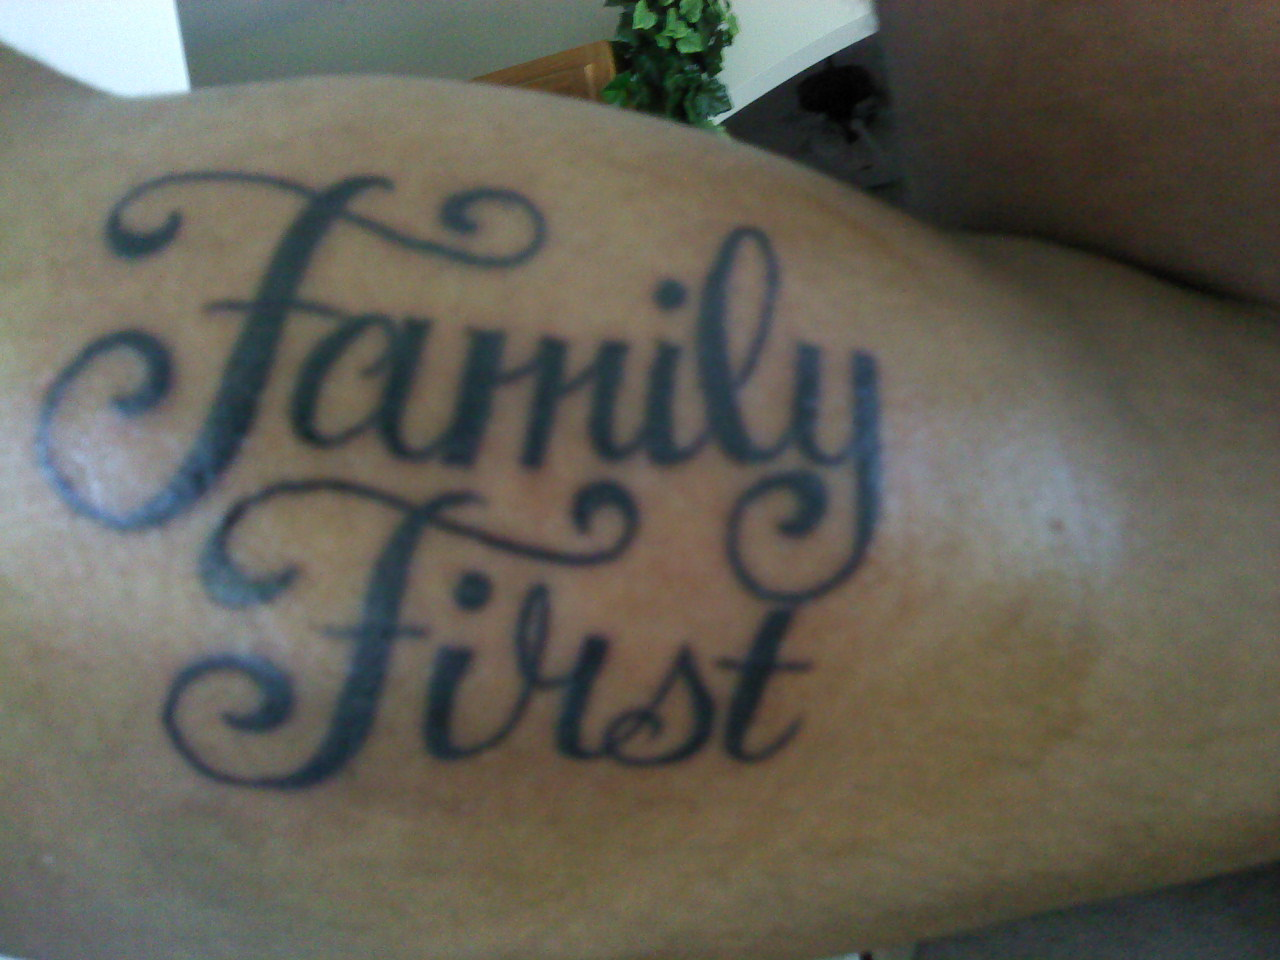 Tattoos with meaning of family